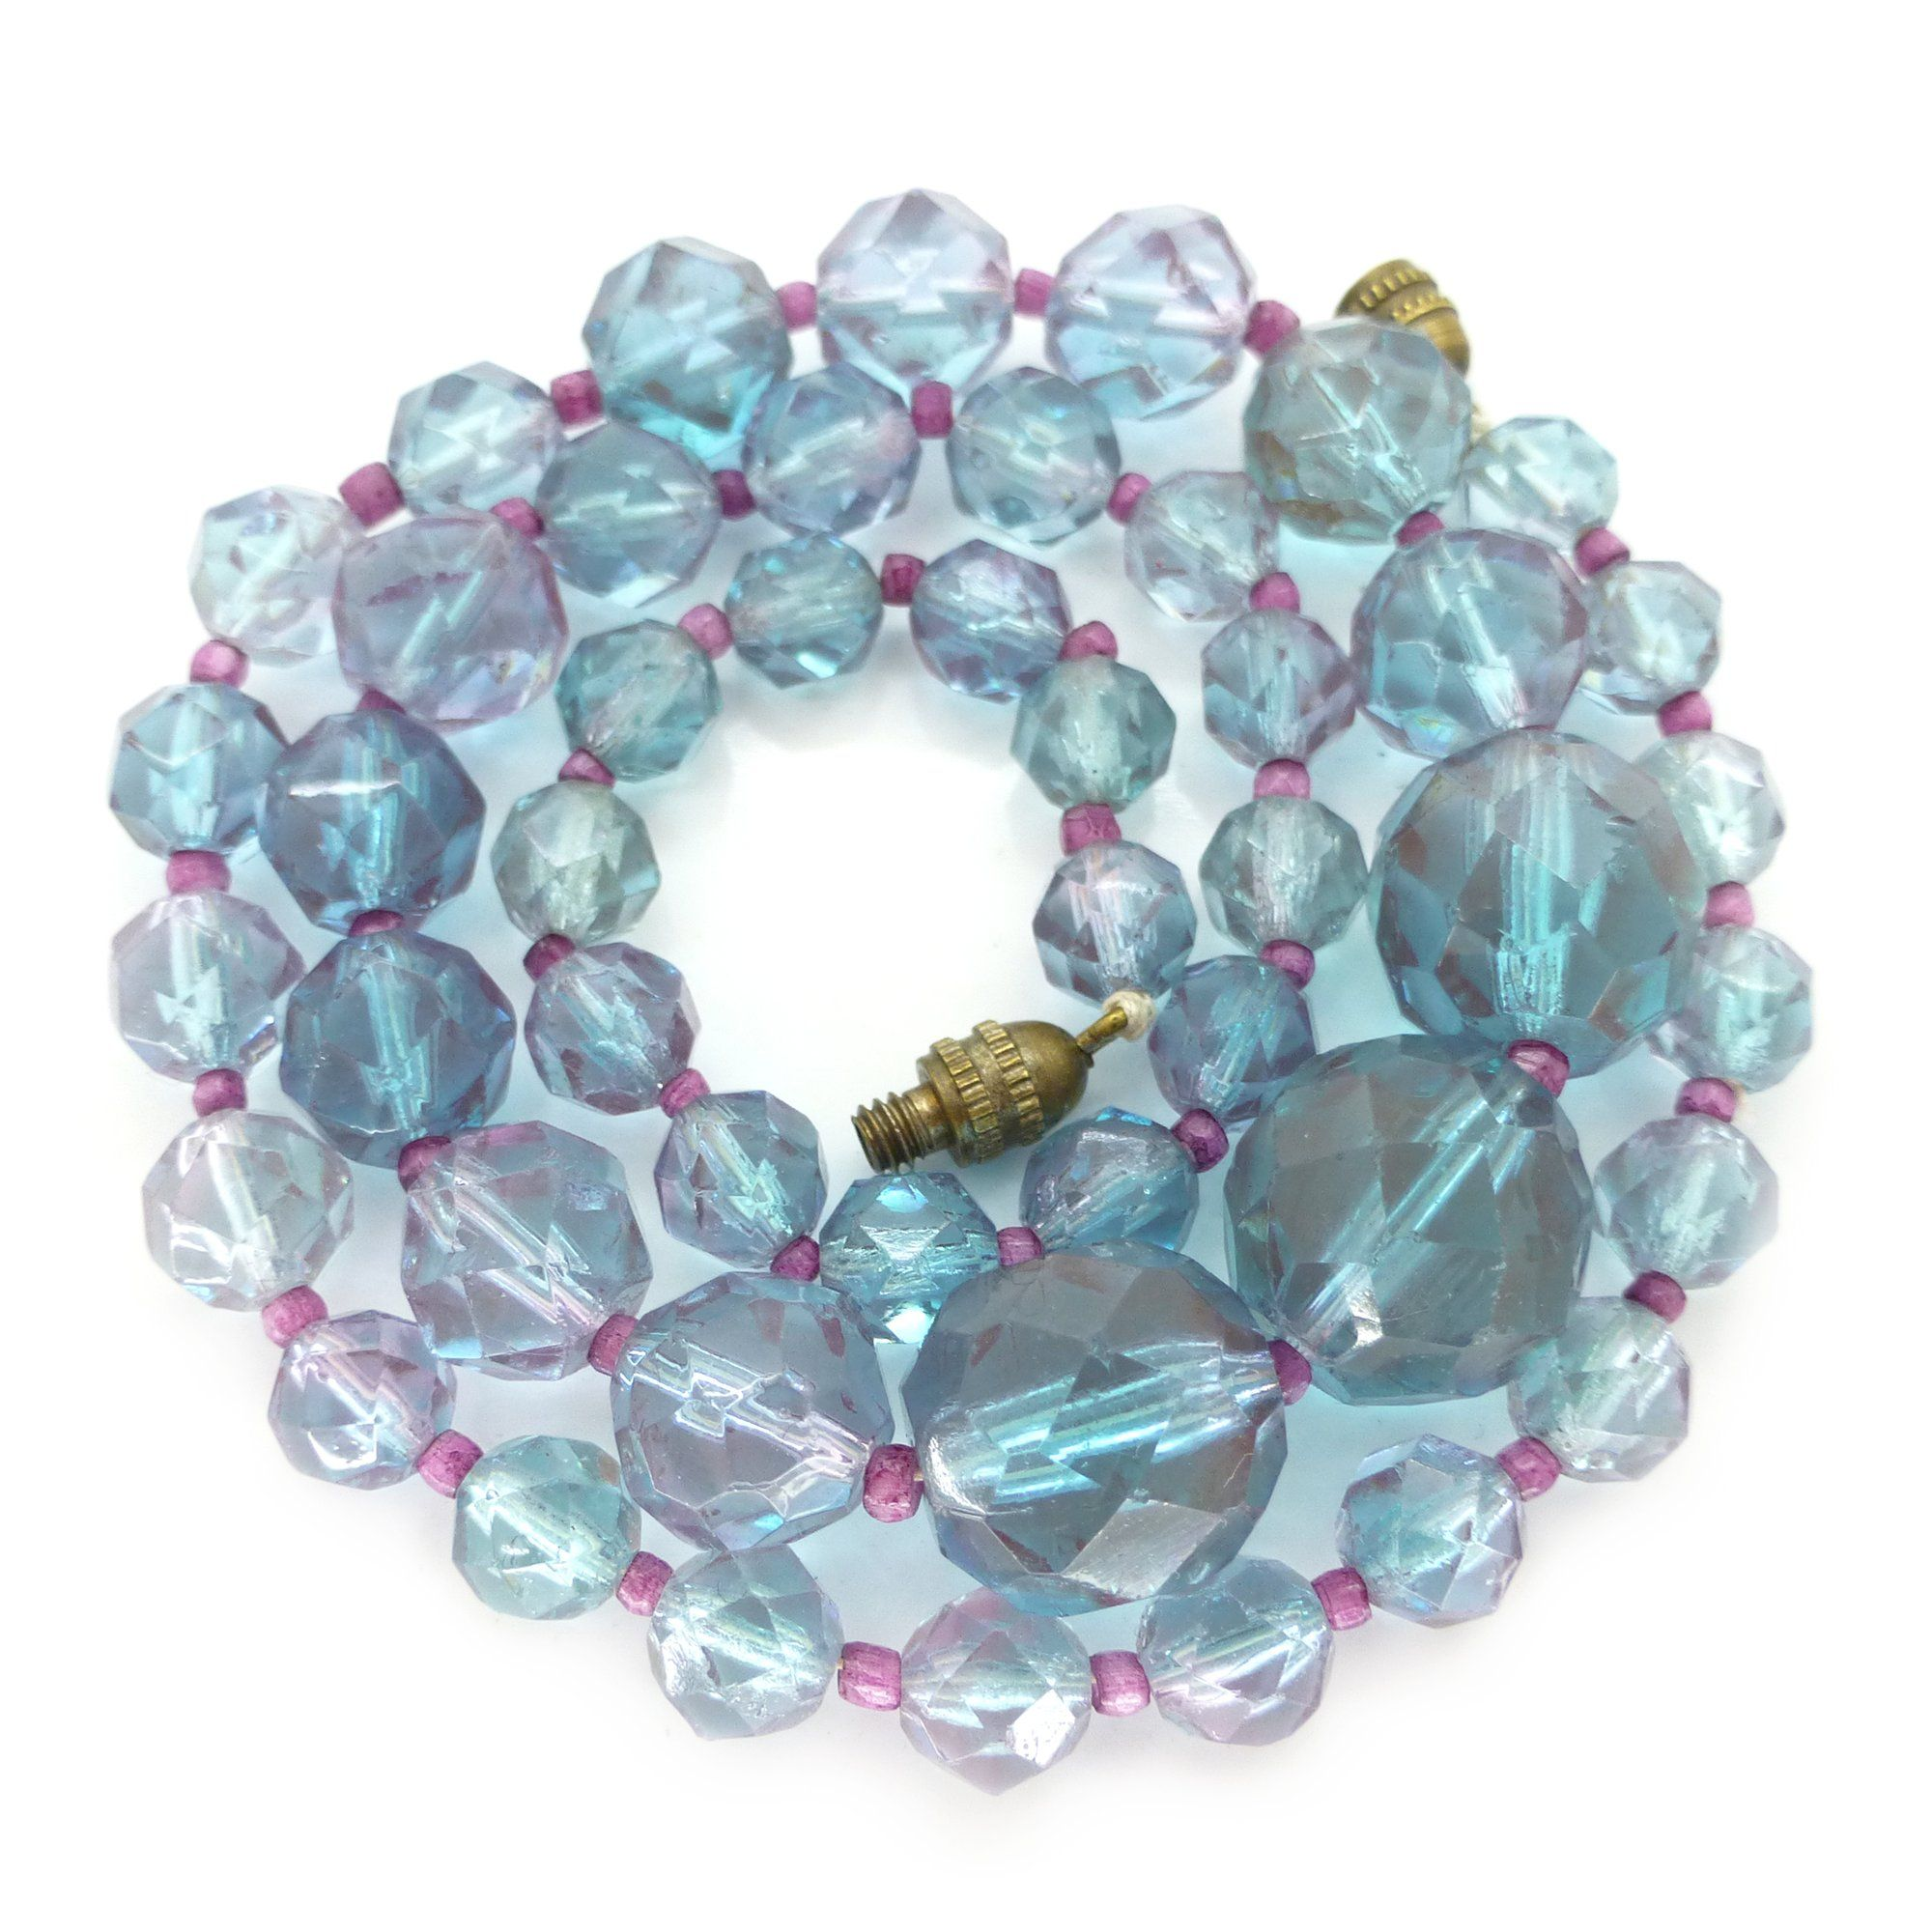 Antique Edwardian Saphiret Glass Faceted Glass Bead Necklace Clarice Jewellery Faceted Glass Bead Necklace Glass Bead Necklace Faceted Bead Necklace